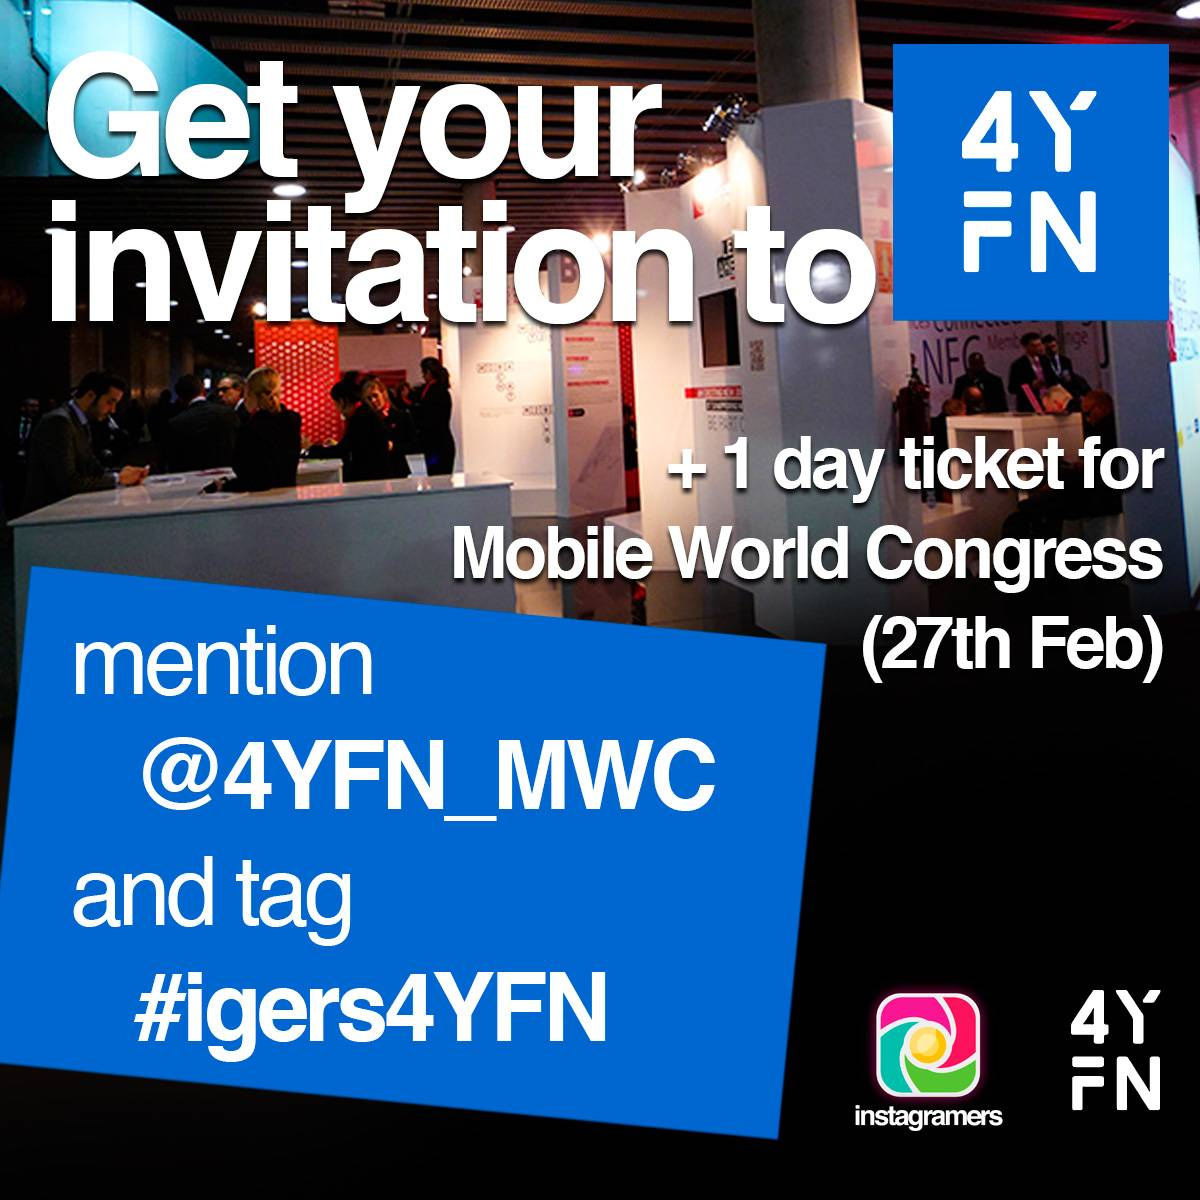 Get your invitation for 2 and visit 4YFN Event for Entrepreneurs